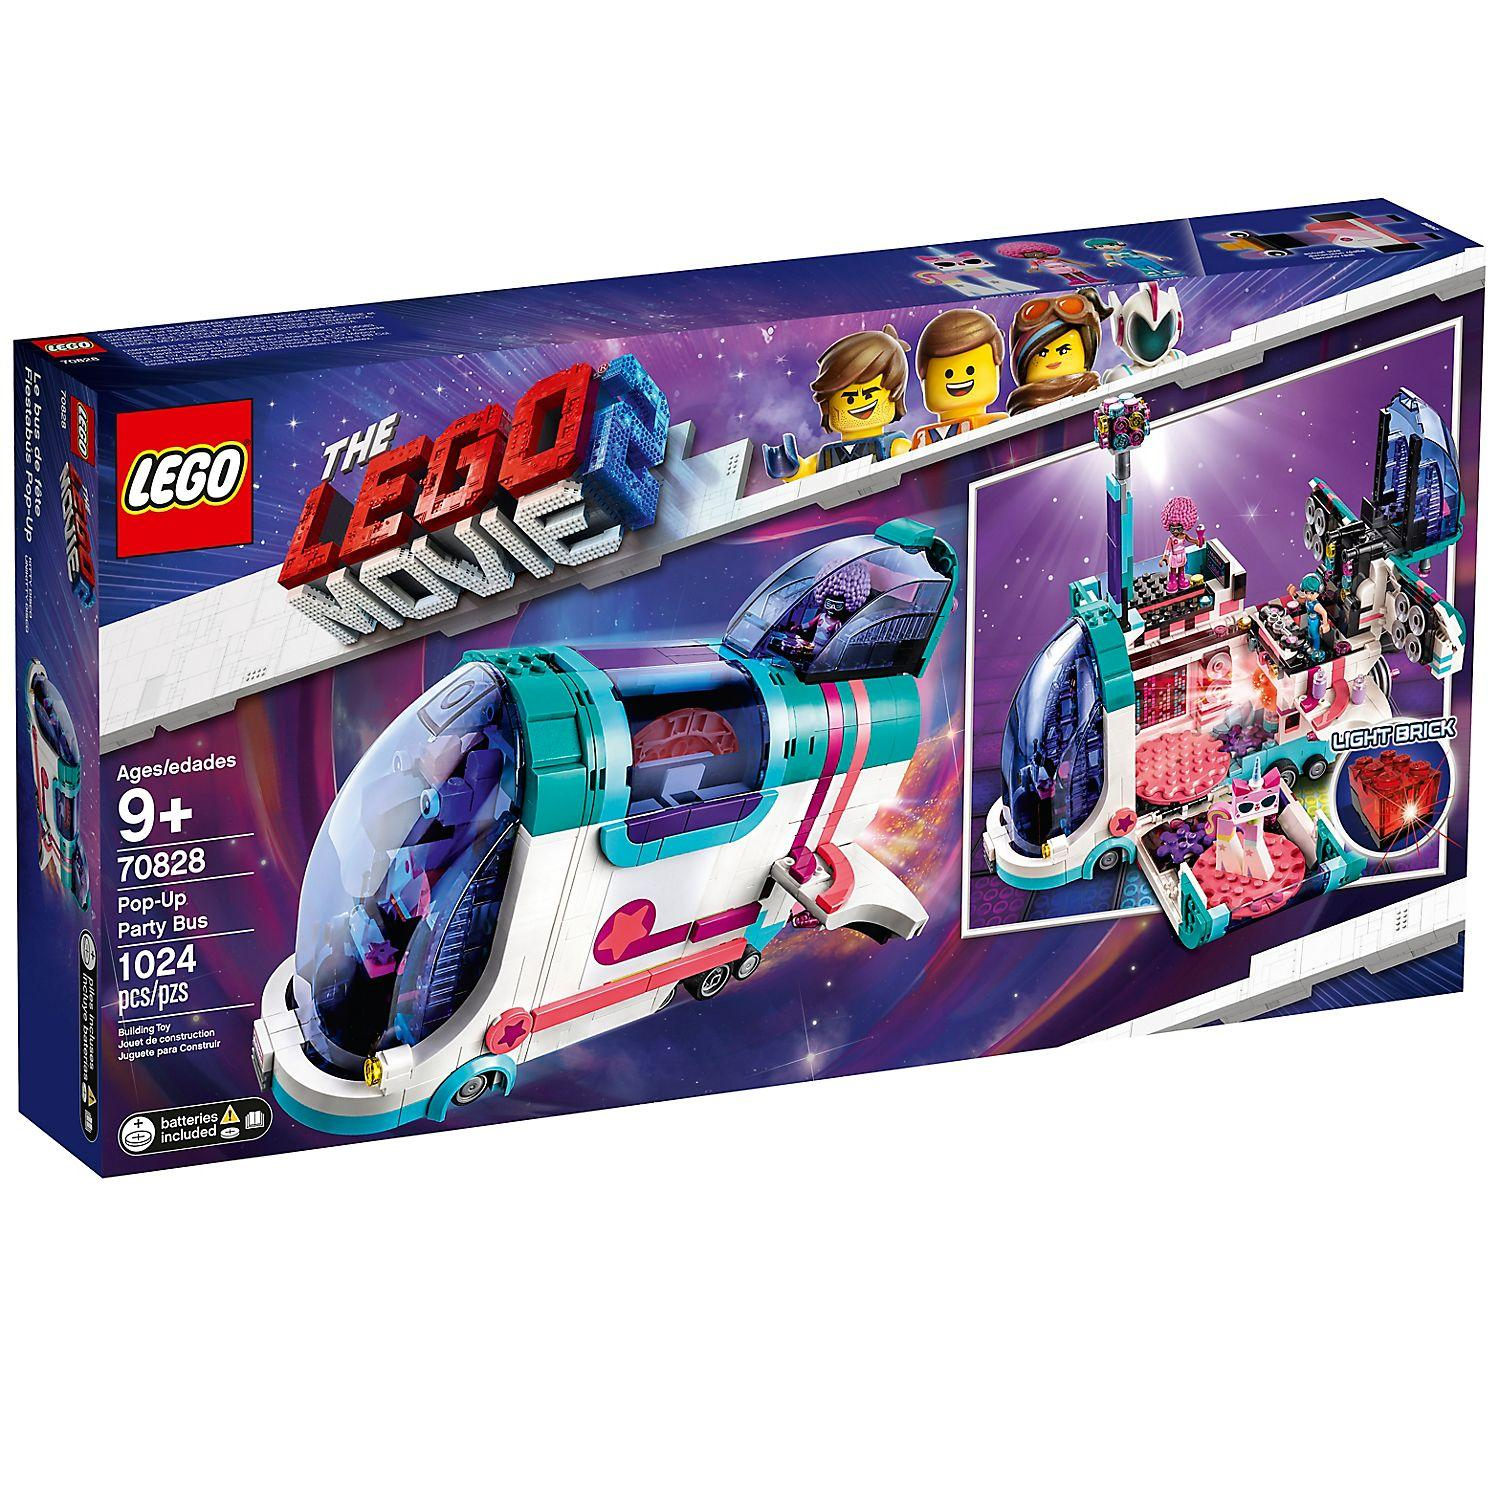 Lego Movie 2 Pop-Up Party Bus (70828)